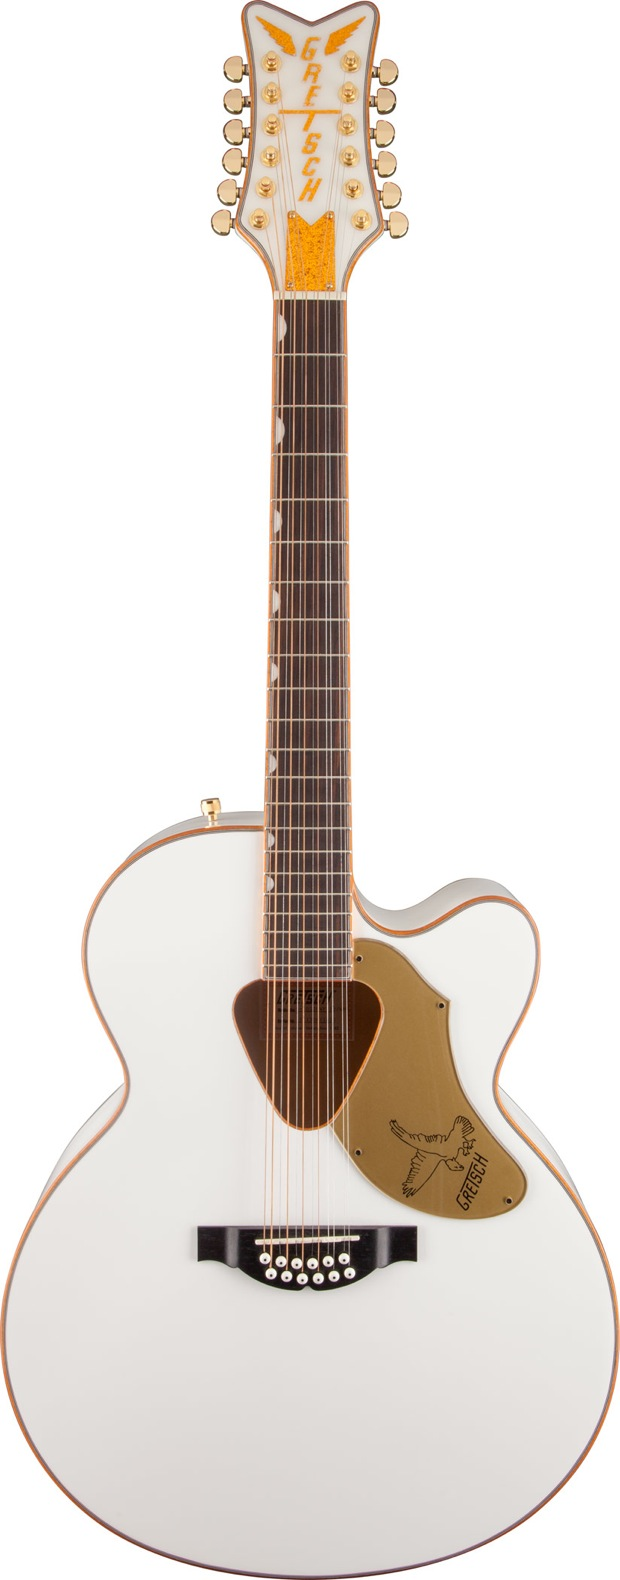 gretsch launches 2104 rancher acoustic guitars acoustic guitar playing. Black Bedroom Furniture Sets. Home Design Ideas